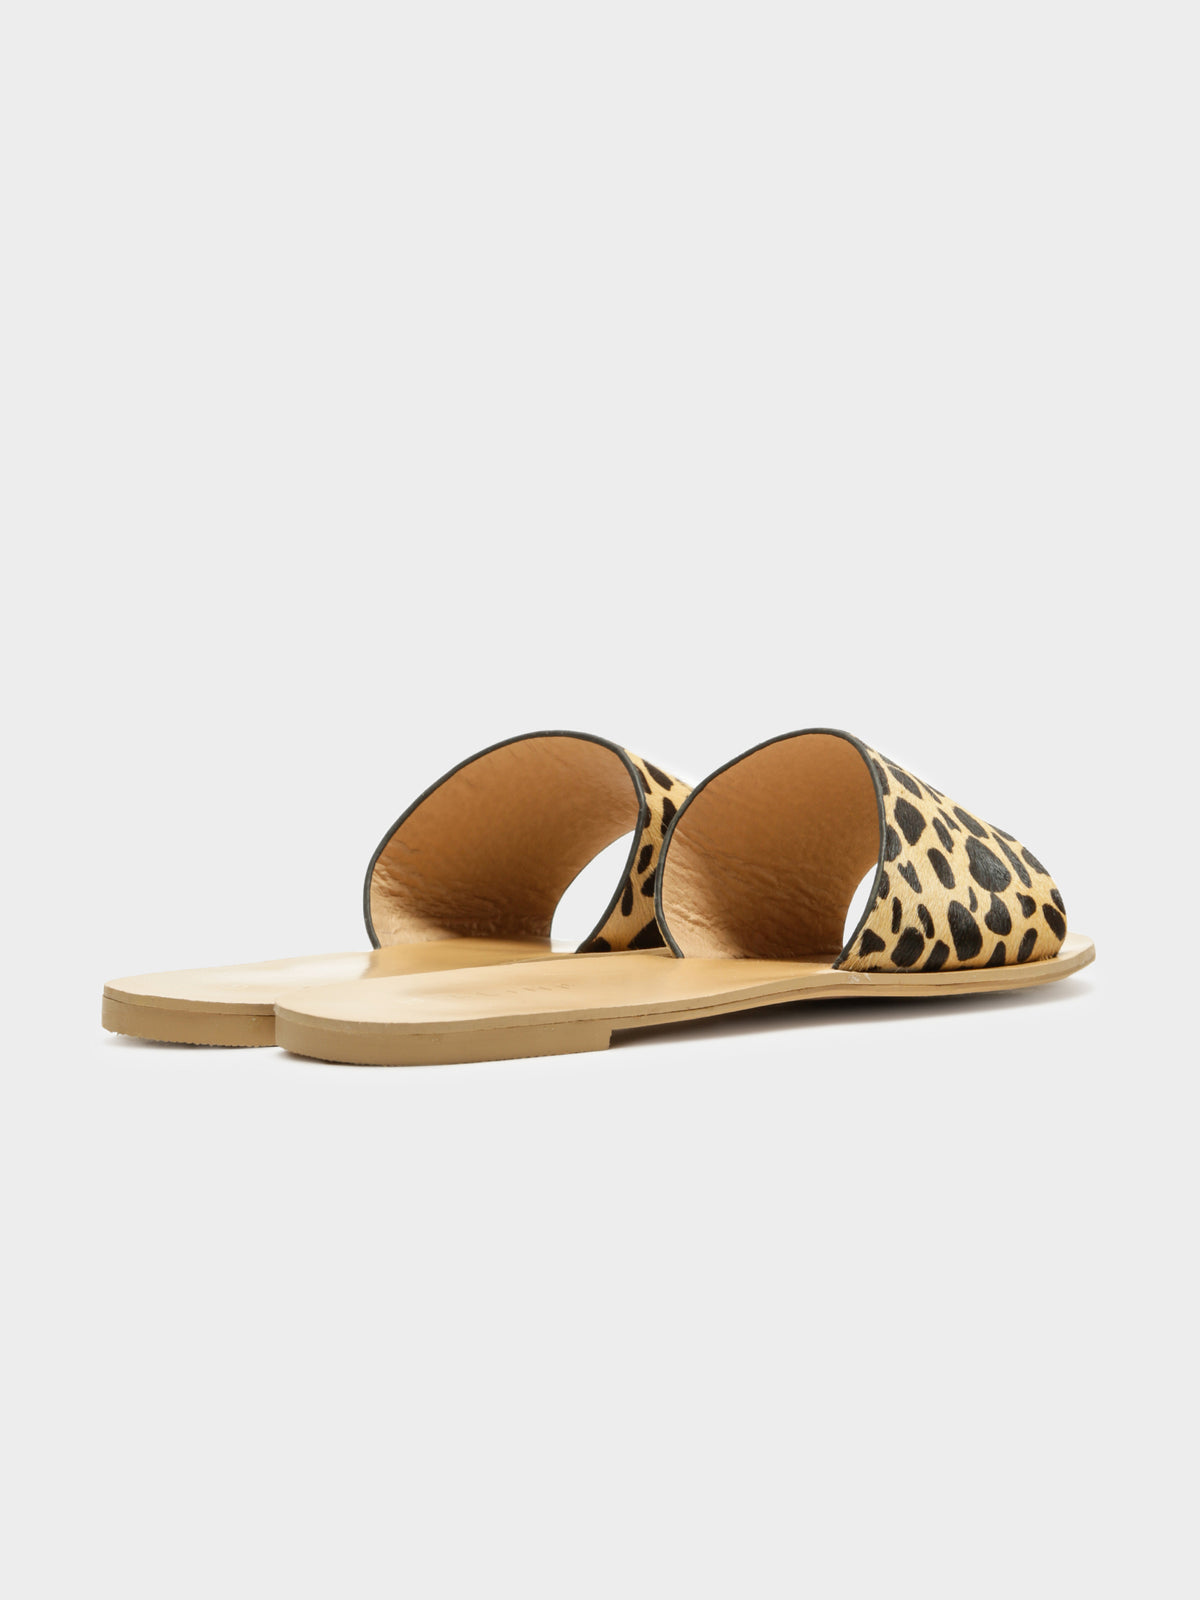 Maliah Slides in Tan Giraffe Pony